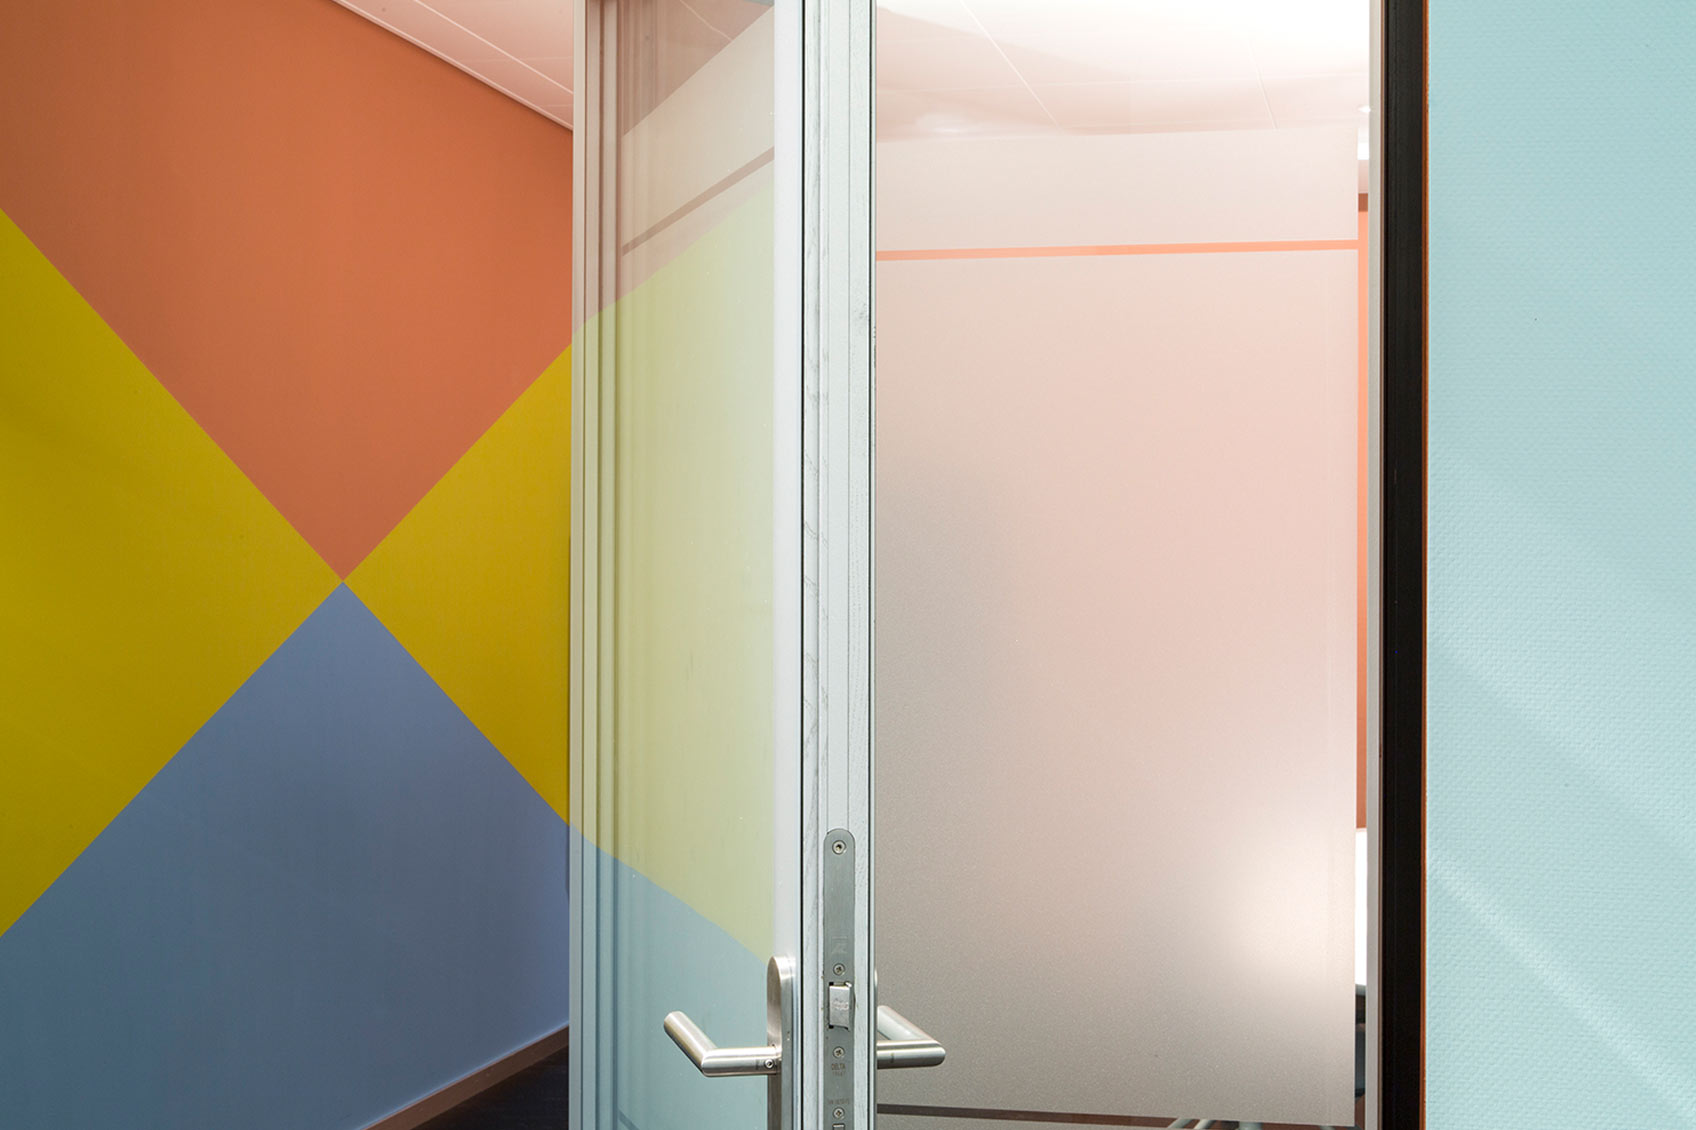 Colour design meeting room door ©Hannah Grüninger